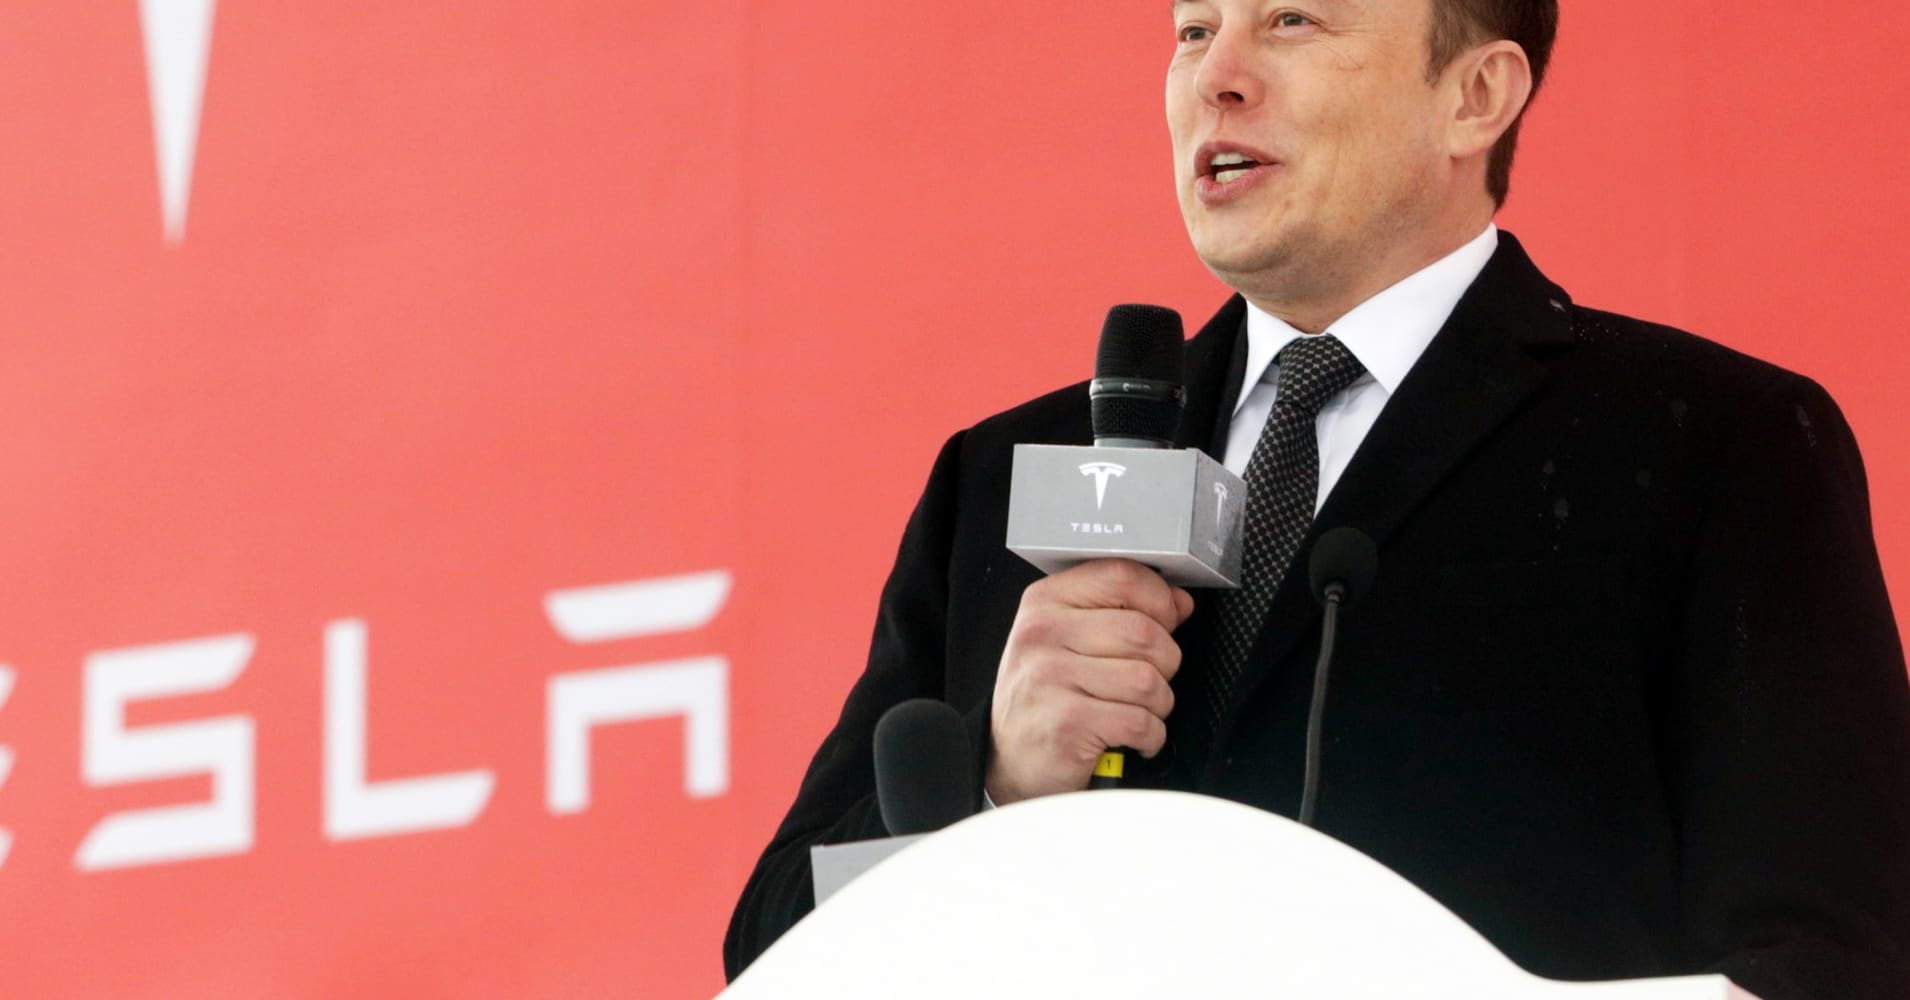 Elon Musk: Self-driving Teslas are going to make their owners money by competing with Uber, Lyft